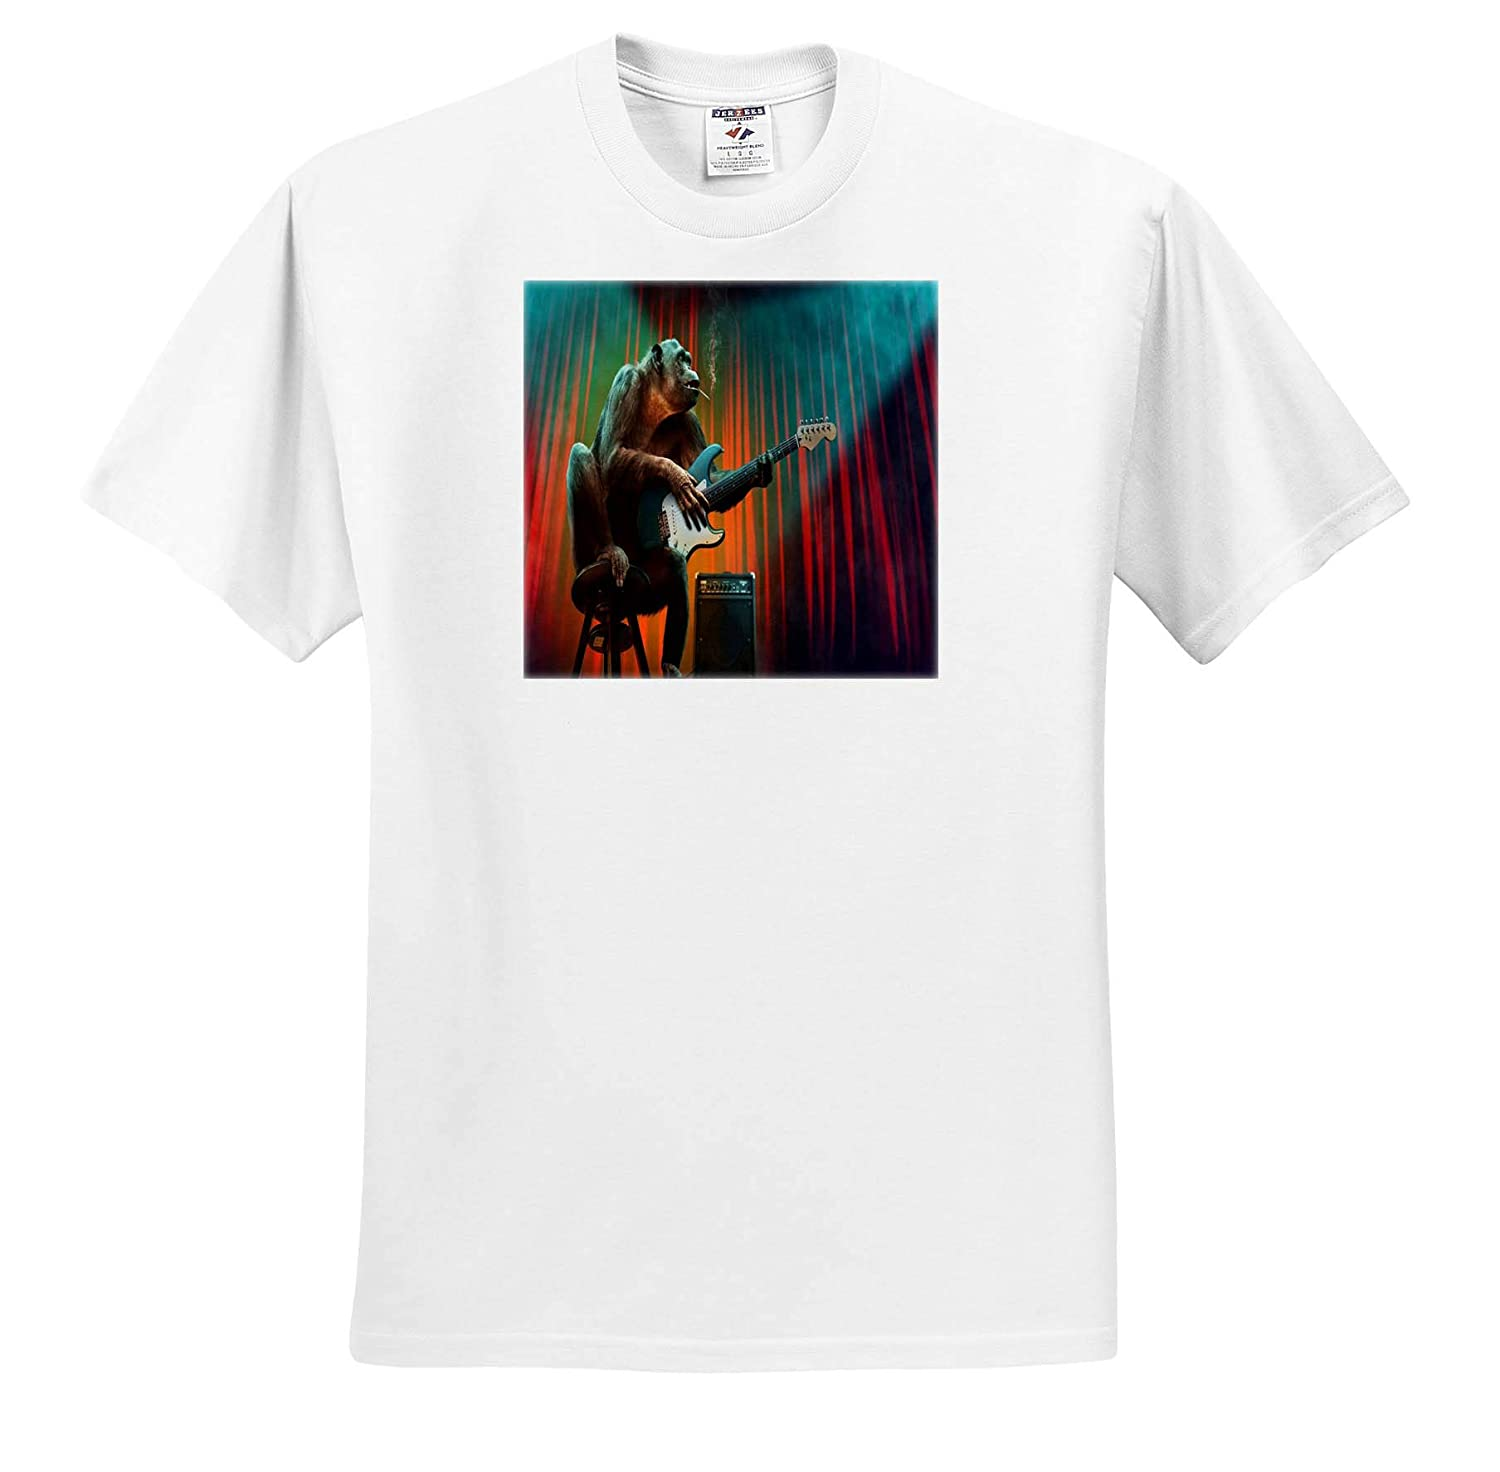 3dRose Lens Art by Florene Nature T-Shirts Image of Orangutan Smokes and Plays Guitar On Stage